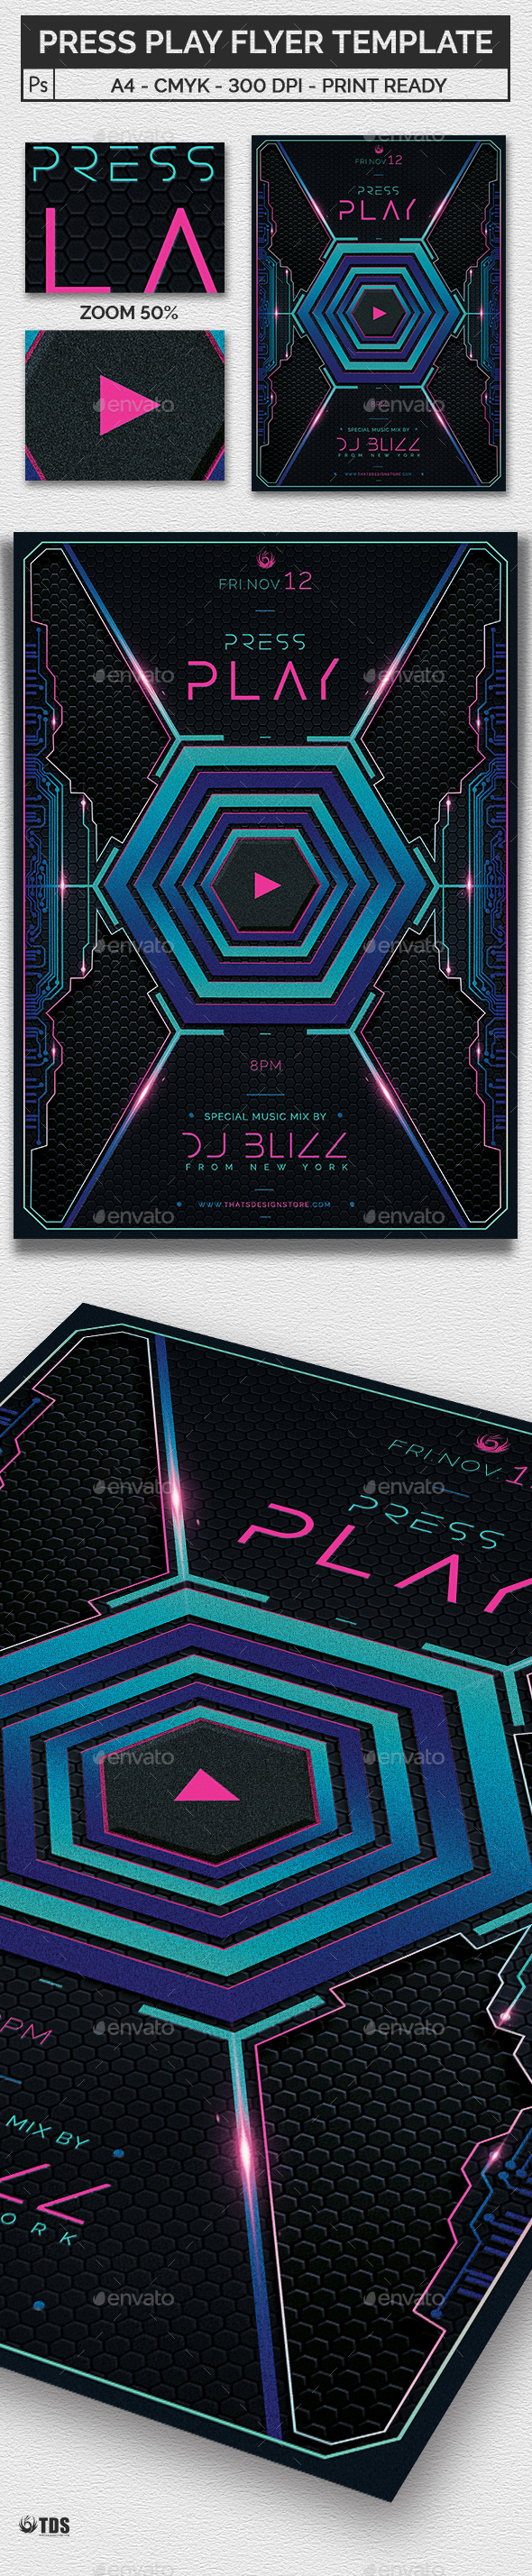 Press Play Flyer Template - Clubs & Parties Events